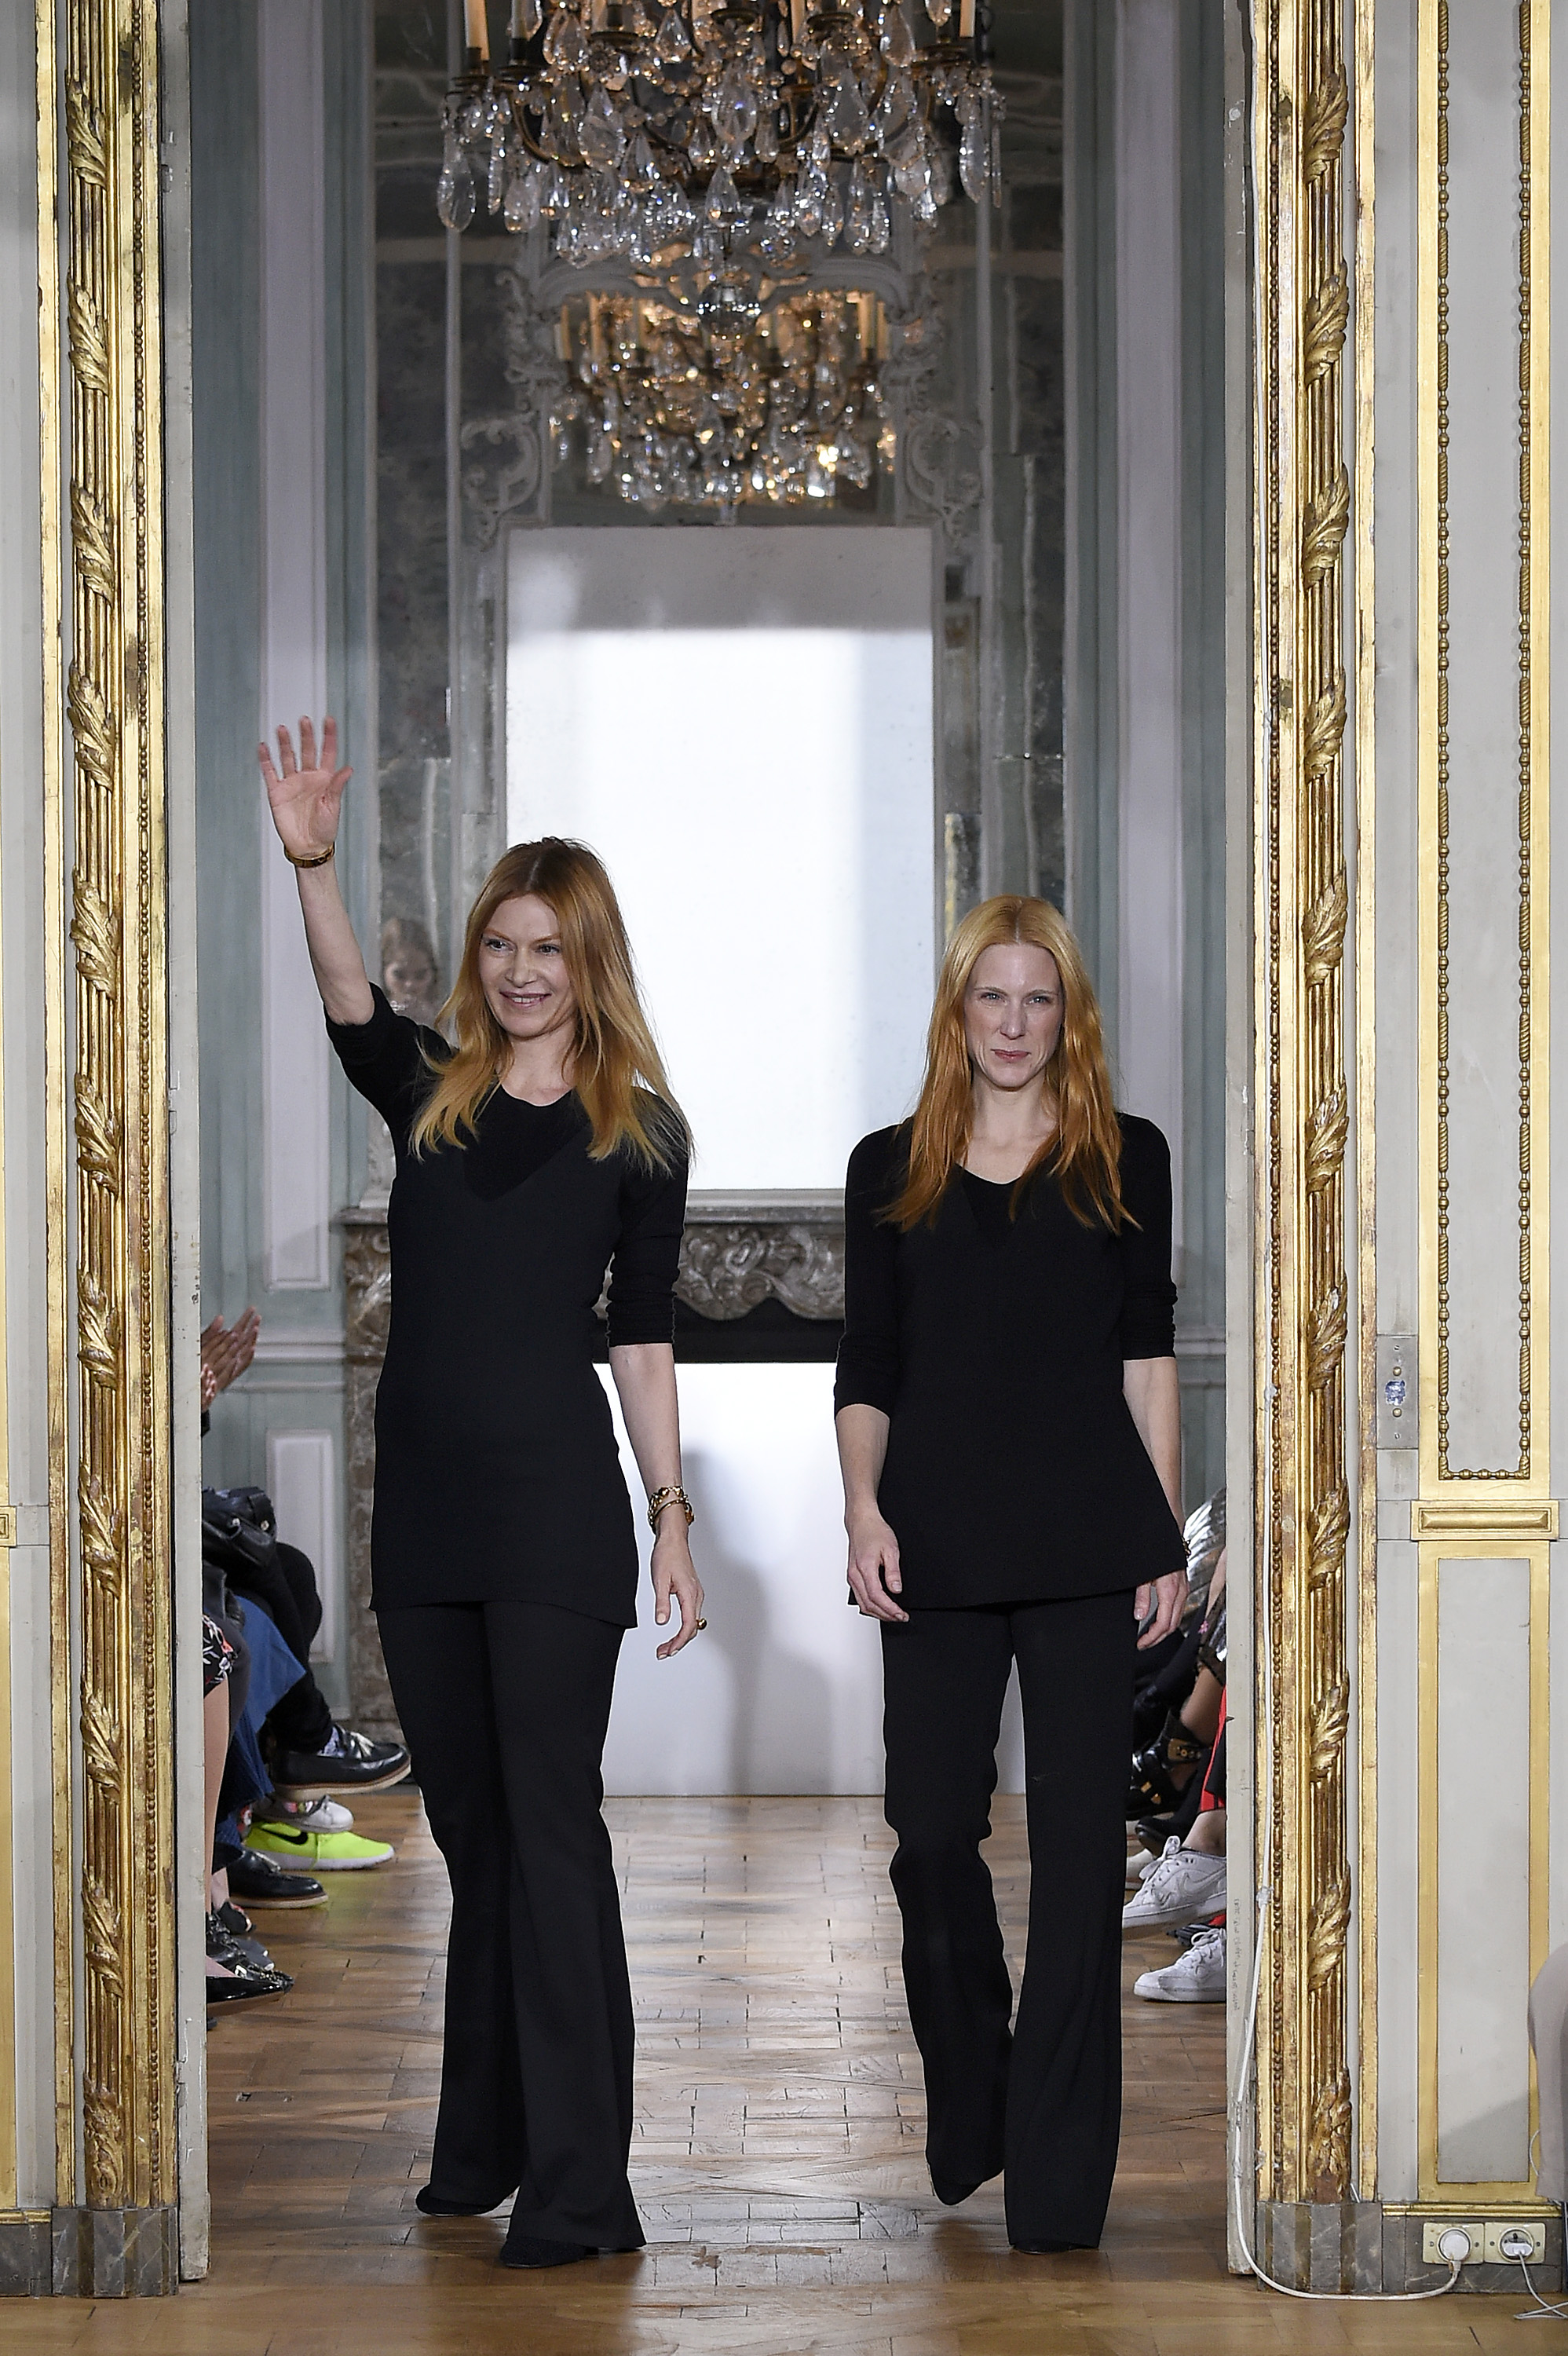 PARIS, FRANCE - OCTOBER 01: Creative Directors Johanna Kuehl and Alexandra Fischer-Roehler acknowledge the audience during theKaviar Gauche show as part of Paris Fashion Week Womenswear Spring/Summer 2017 on October 1, 2016 in Paris, France. (Photo by Kristy Sparow/Getty Images for Kaviar Gauche) *** Local Caption *** Johanna Kuehl; Alexandra Fischer-Roehler